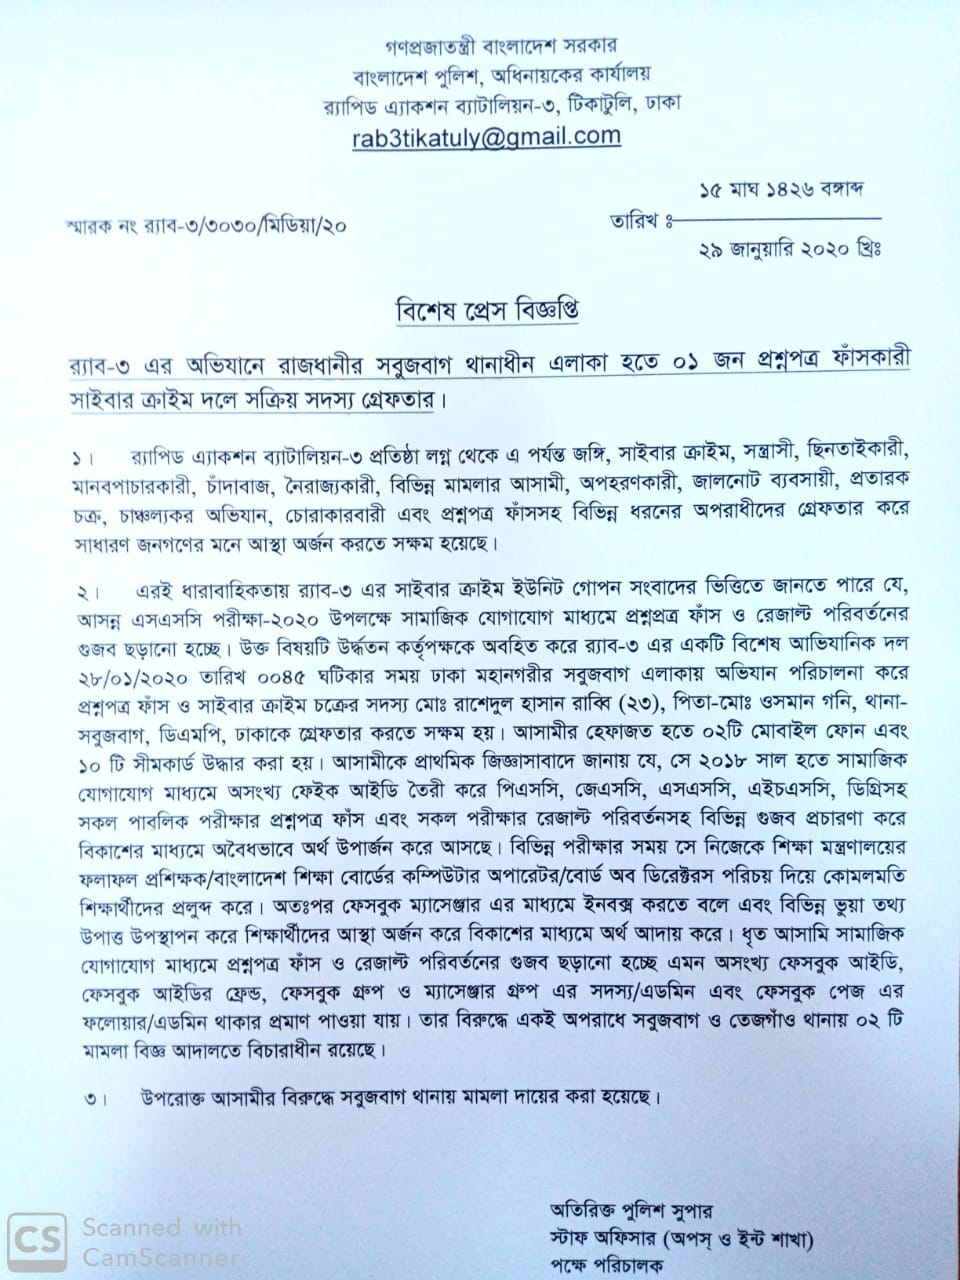 The press release, sent by RAB-3